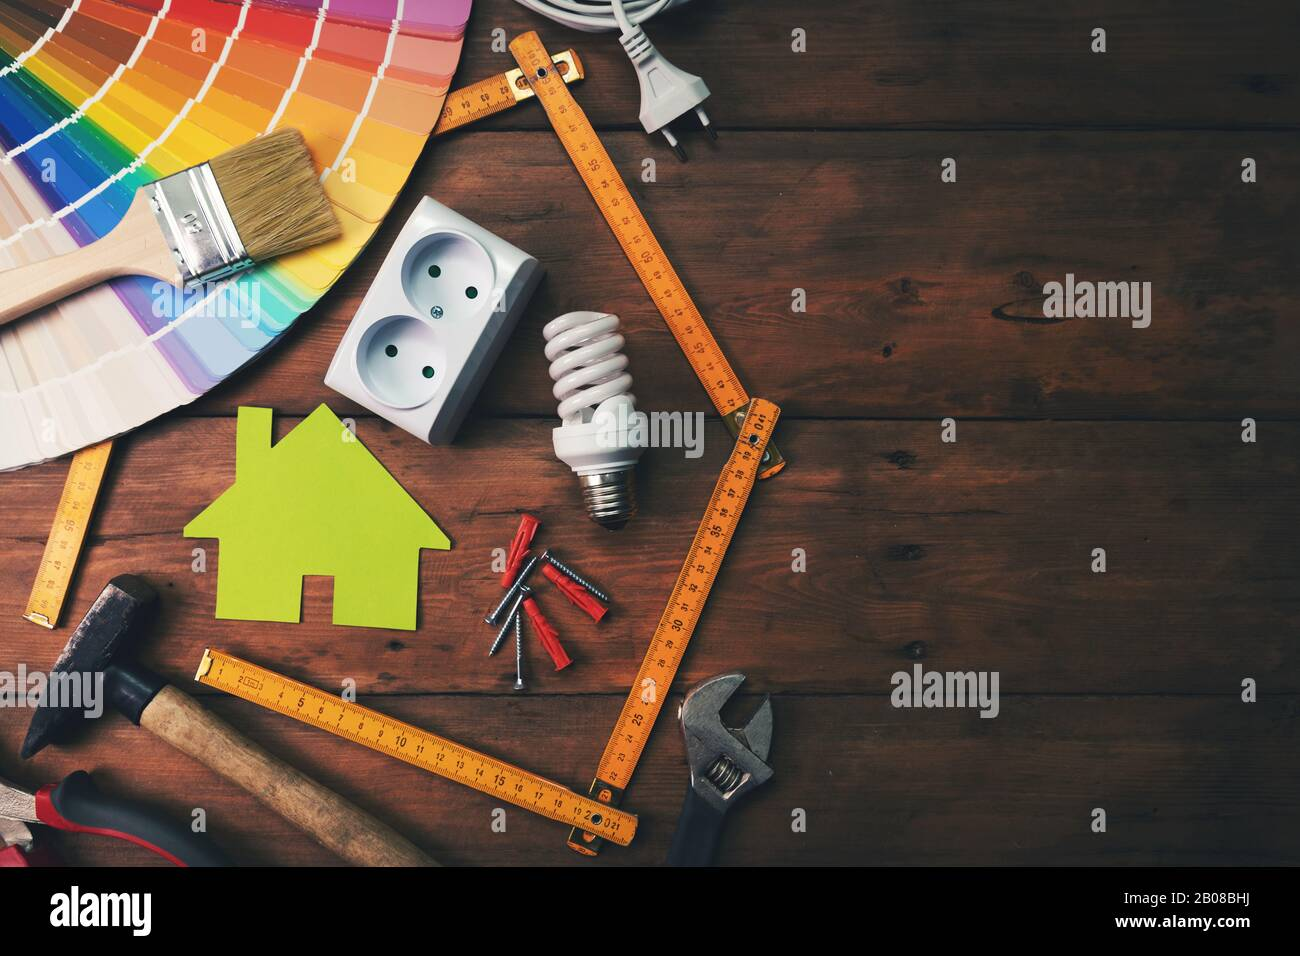 home improvement and repair concept - work tools and objects on wooden table. top view copy space Stock Photo